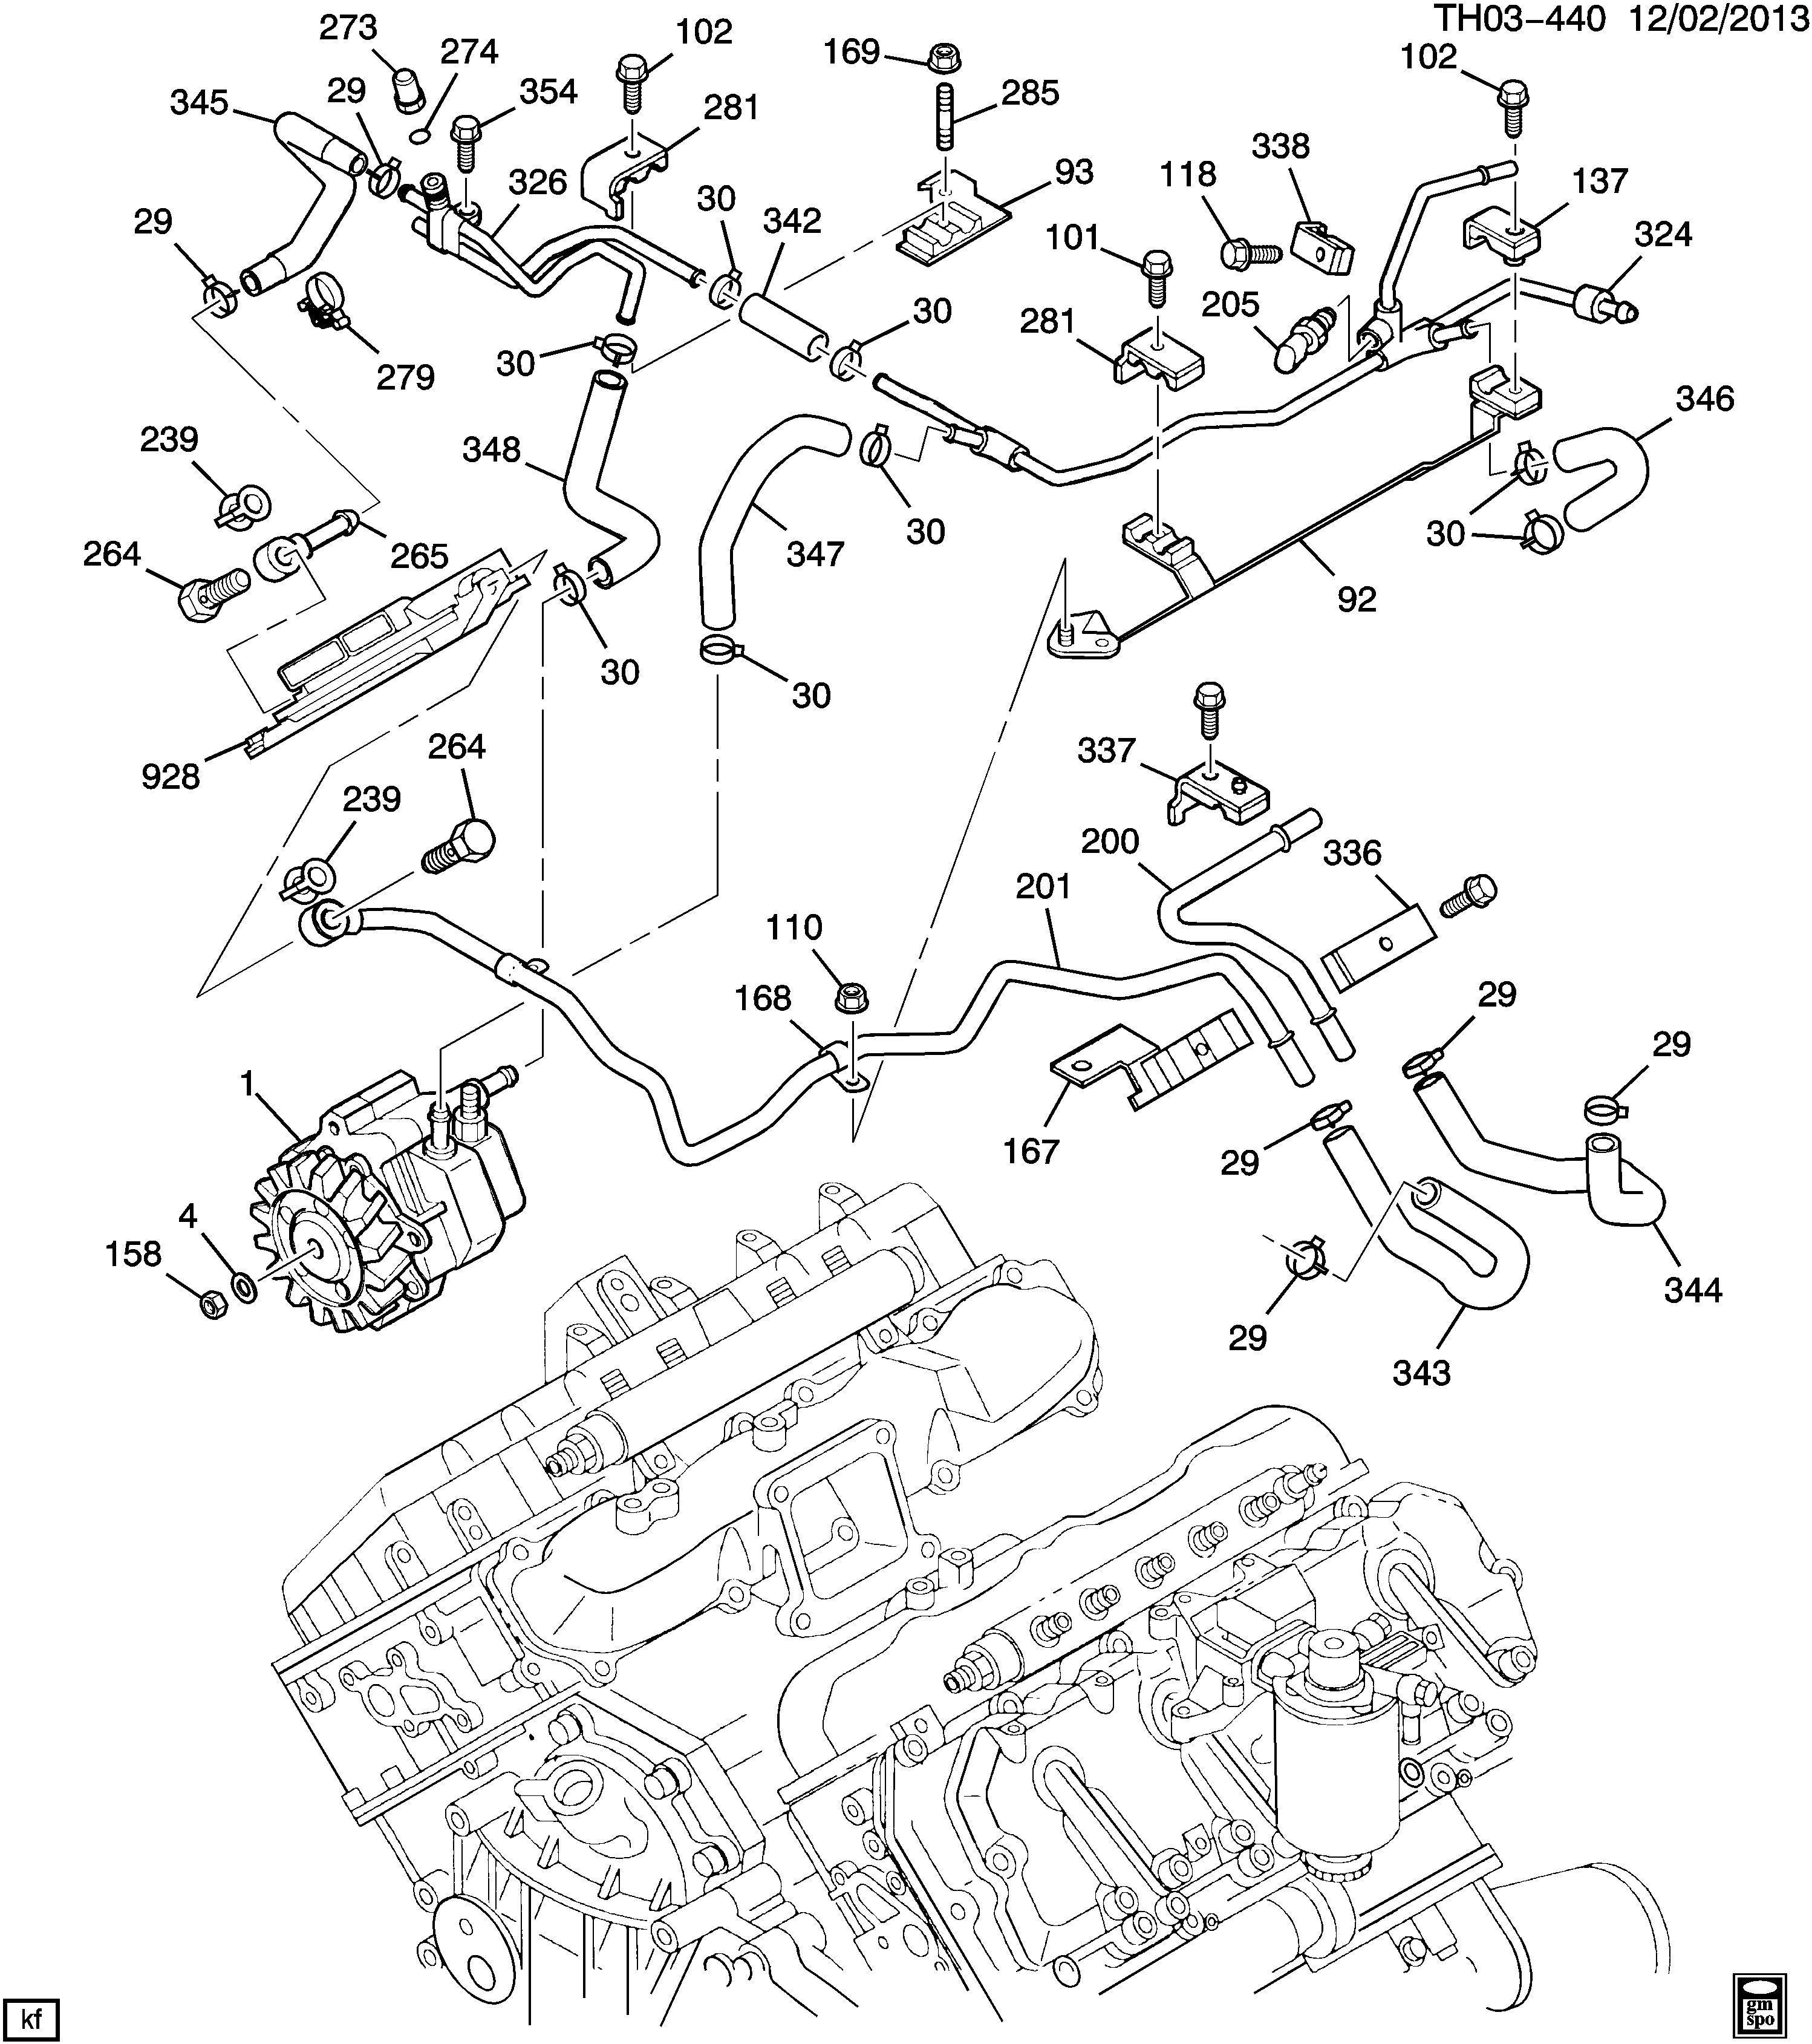 duramax fuel system wiring diagram fuel injection system-pipes & module 2007 avalanche fuel system wiring diagram